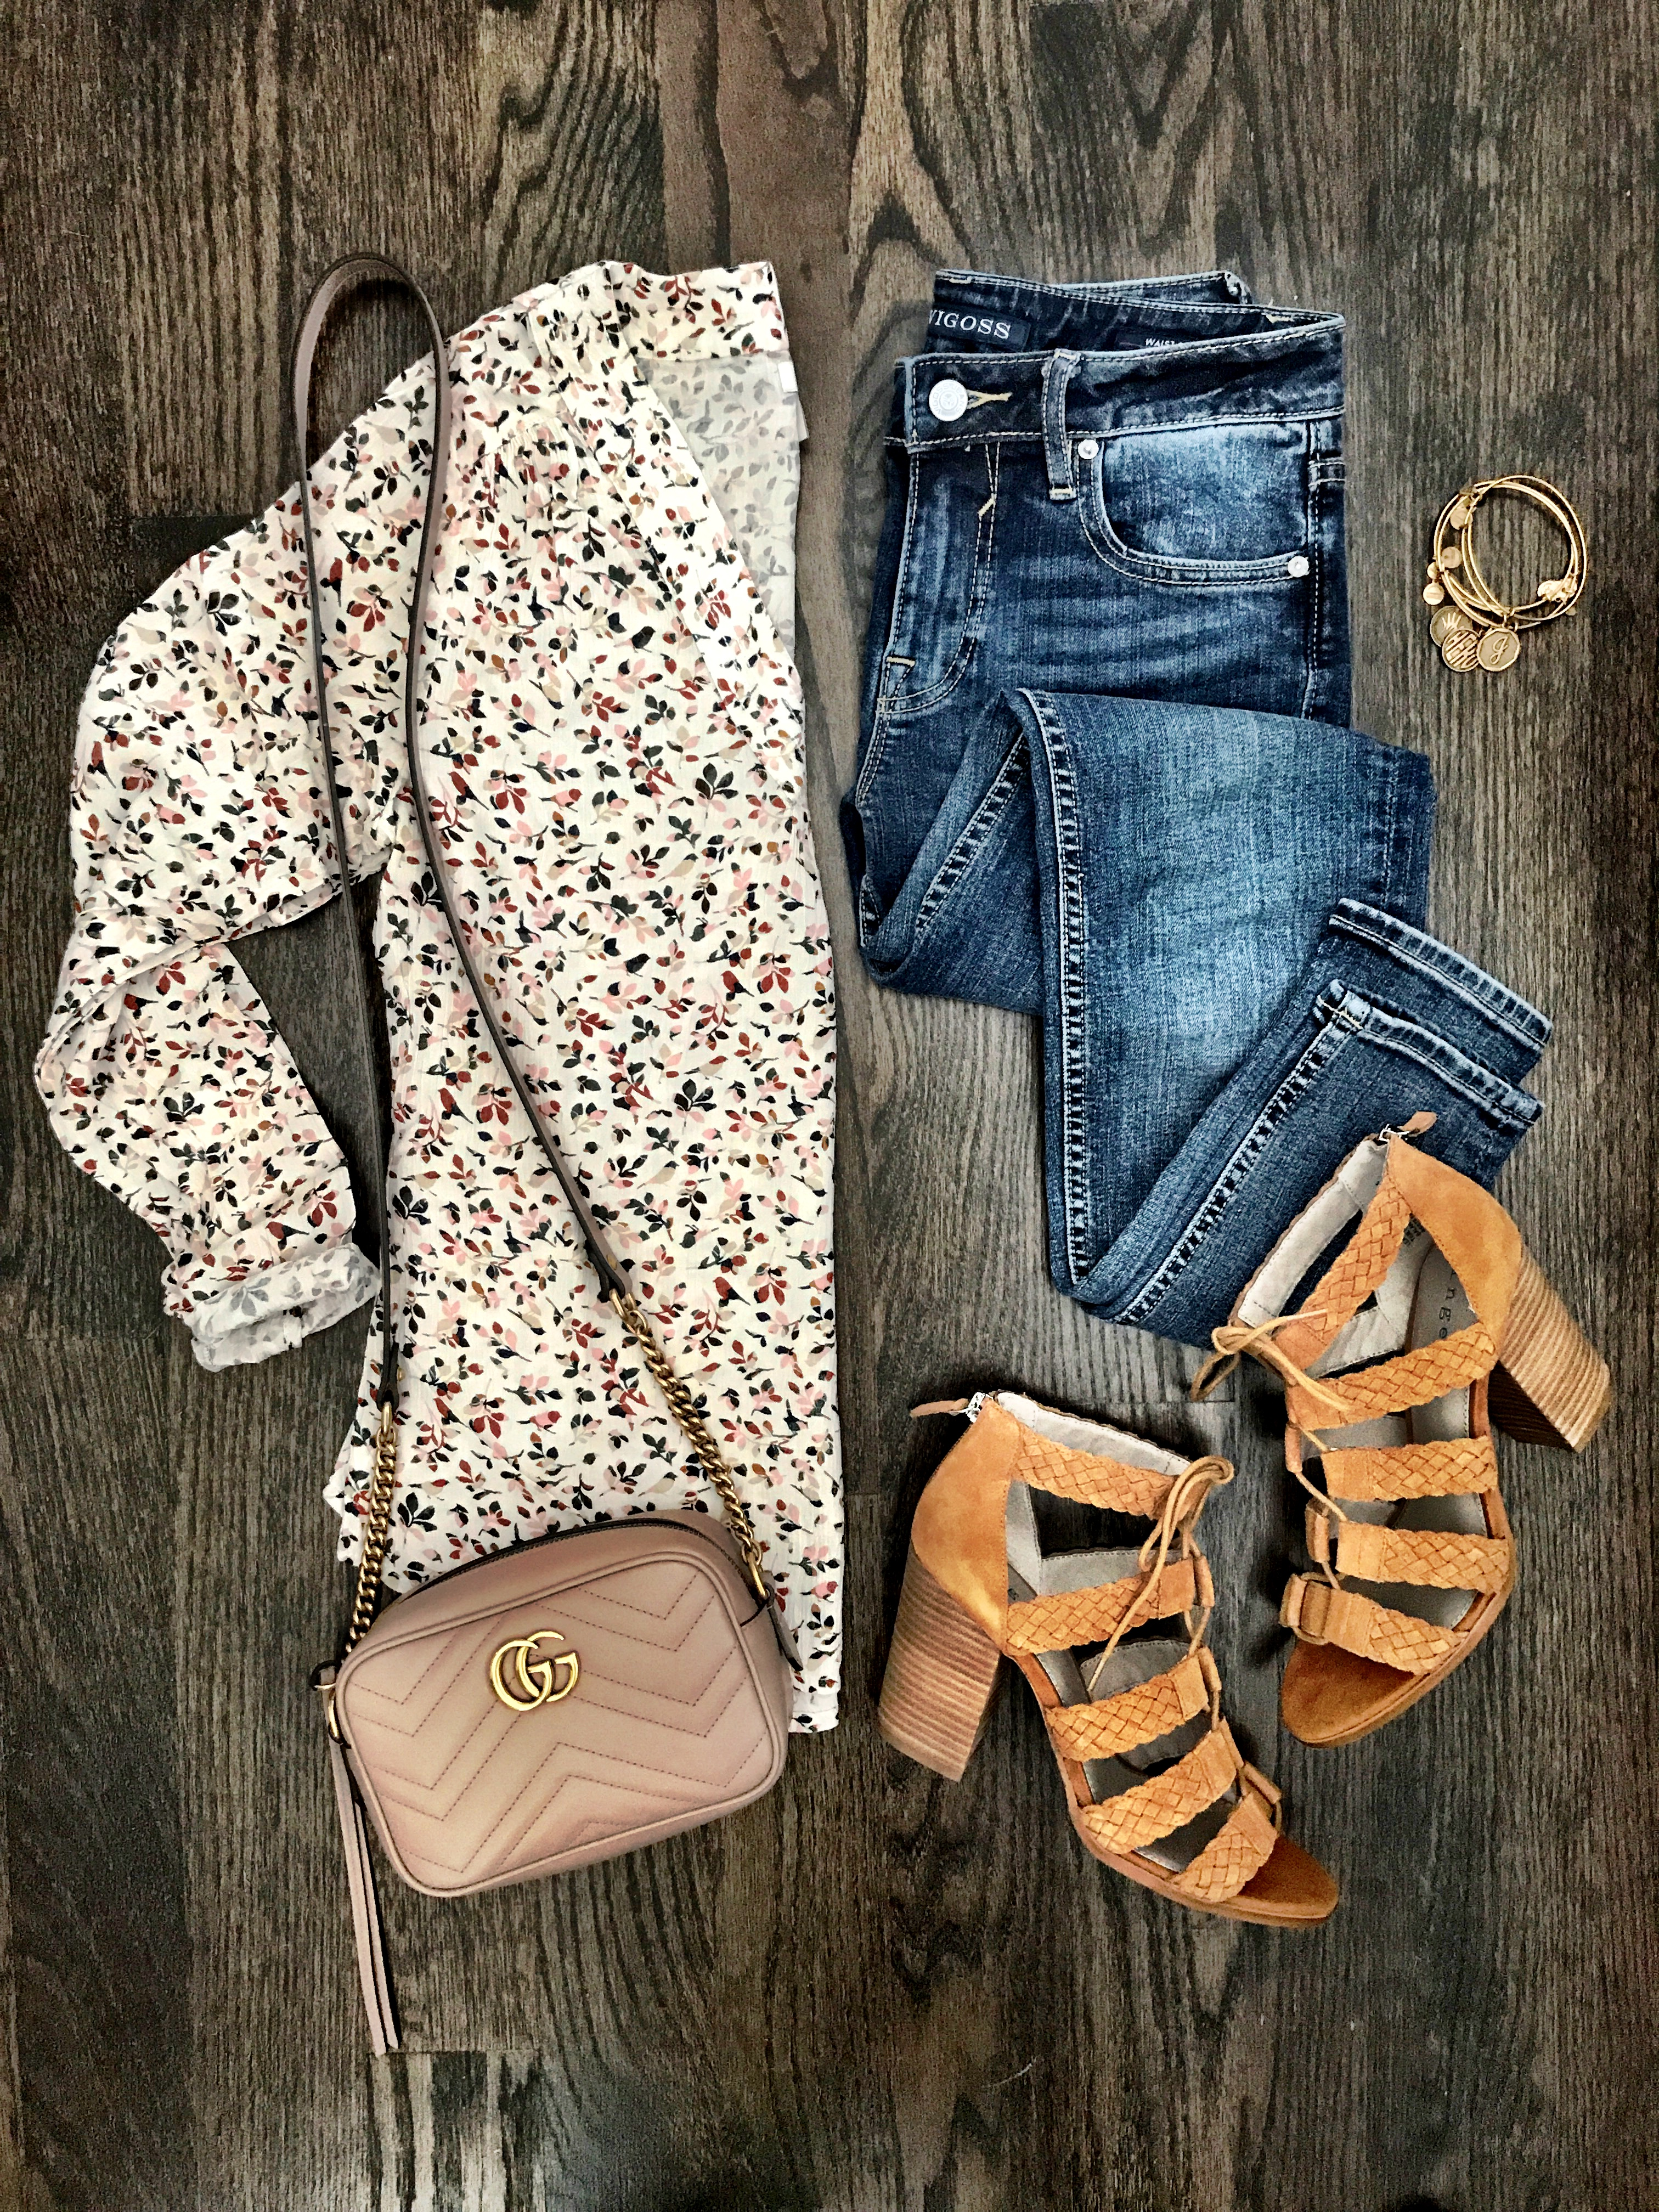 Hinge floral top and lace up block heel sandals